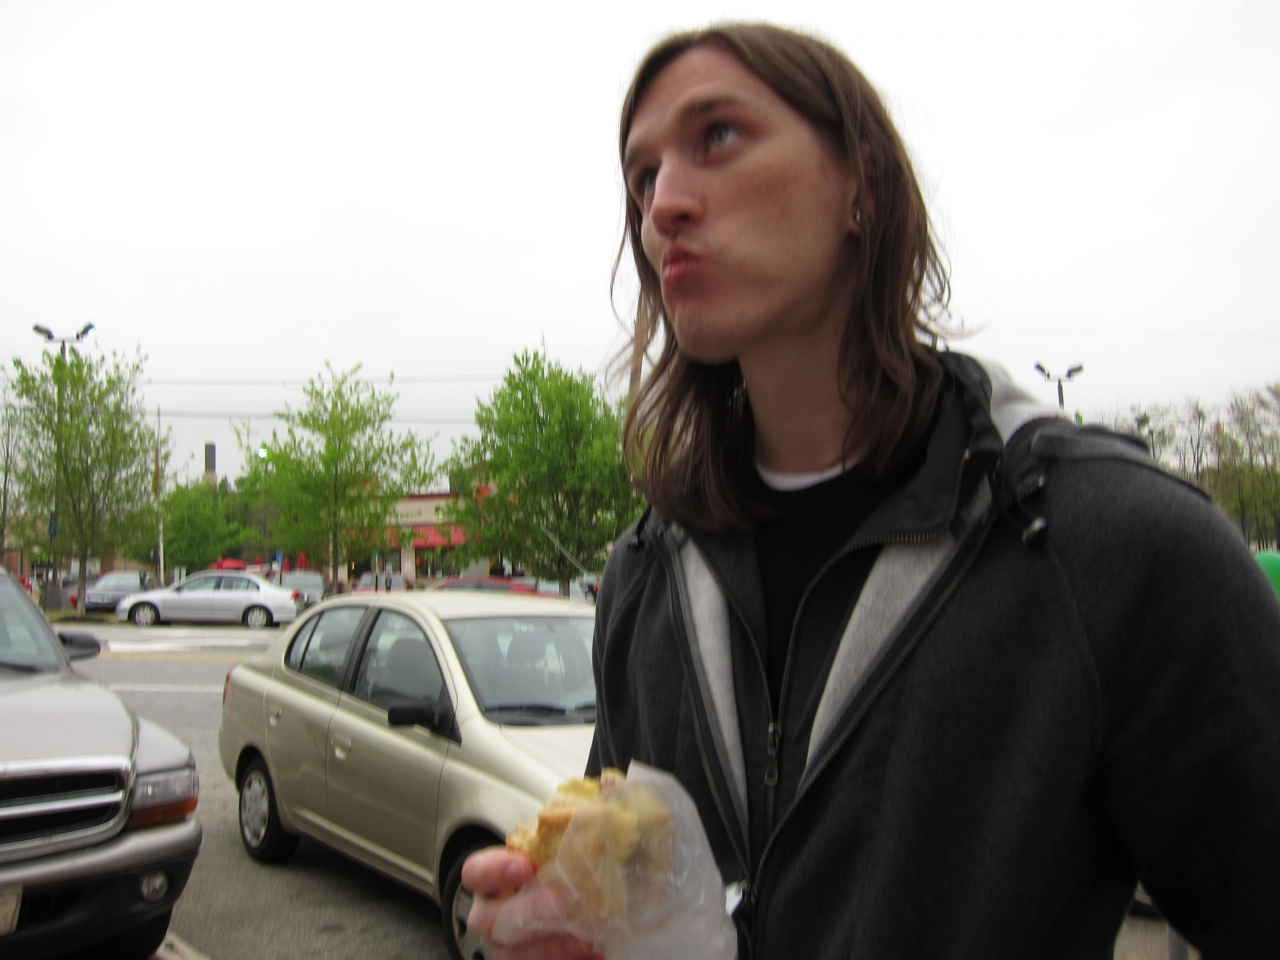 Jeff eating a sausage biscuit